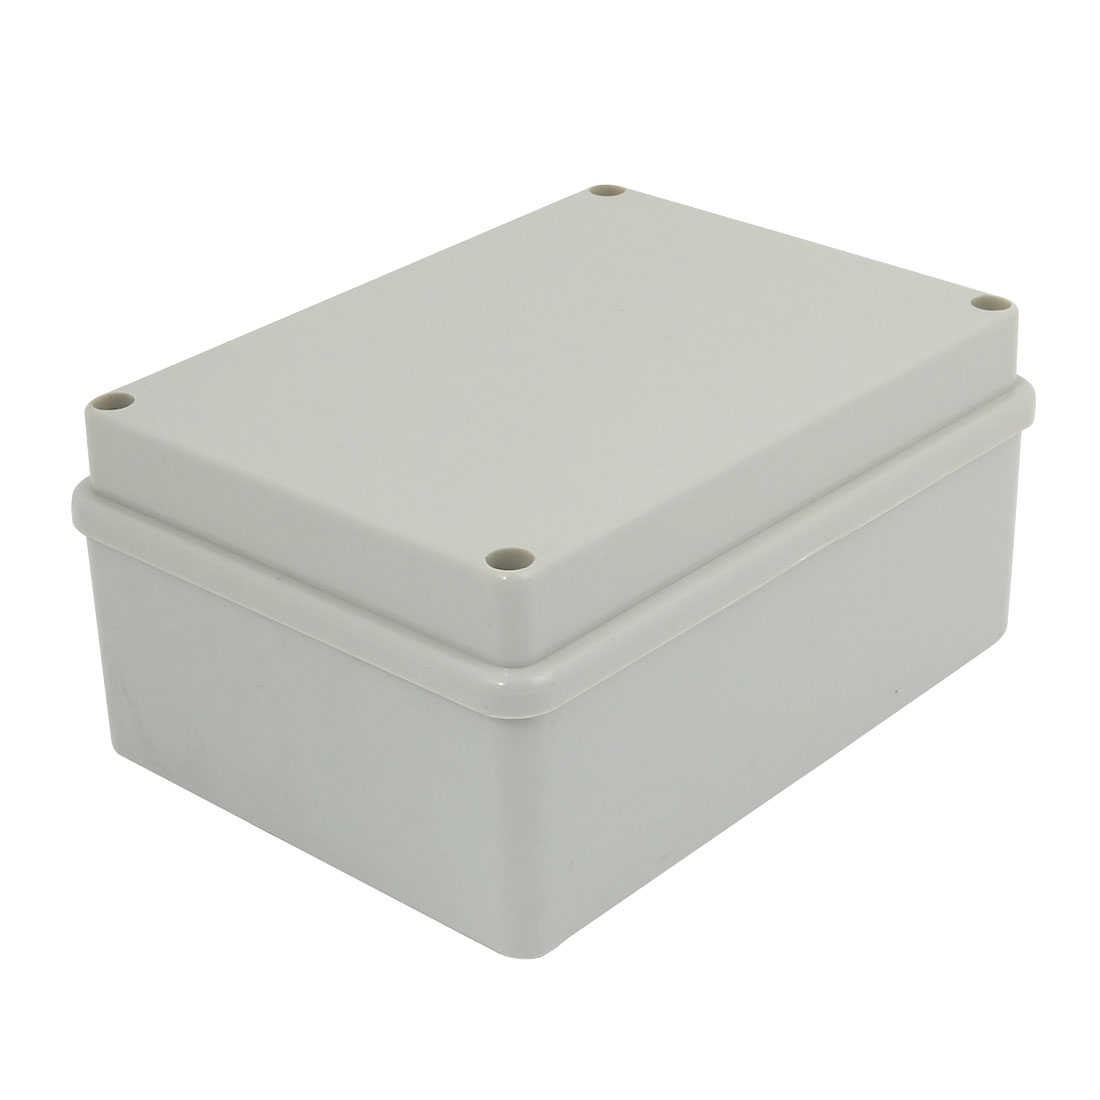 150mm x 110mm x 70mm Electronic ABS Plastic DIY Junction Box Enclosure Case Gray